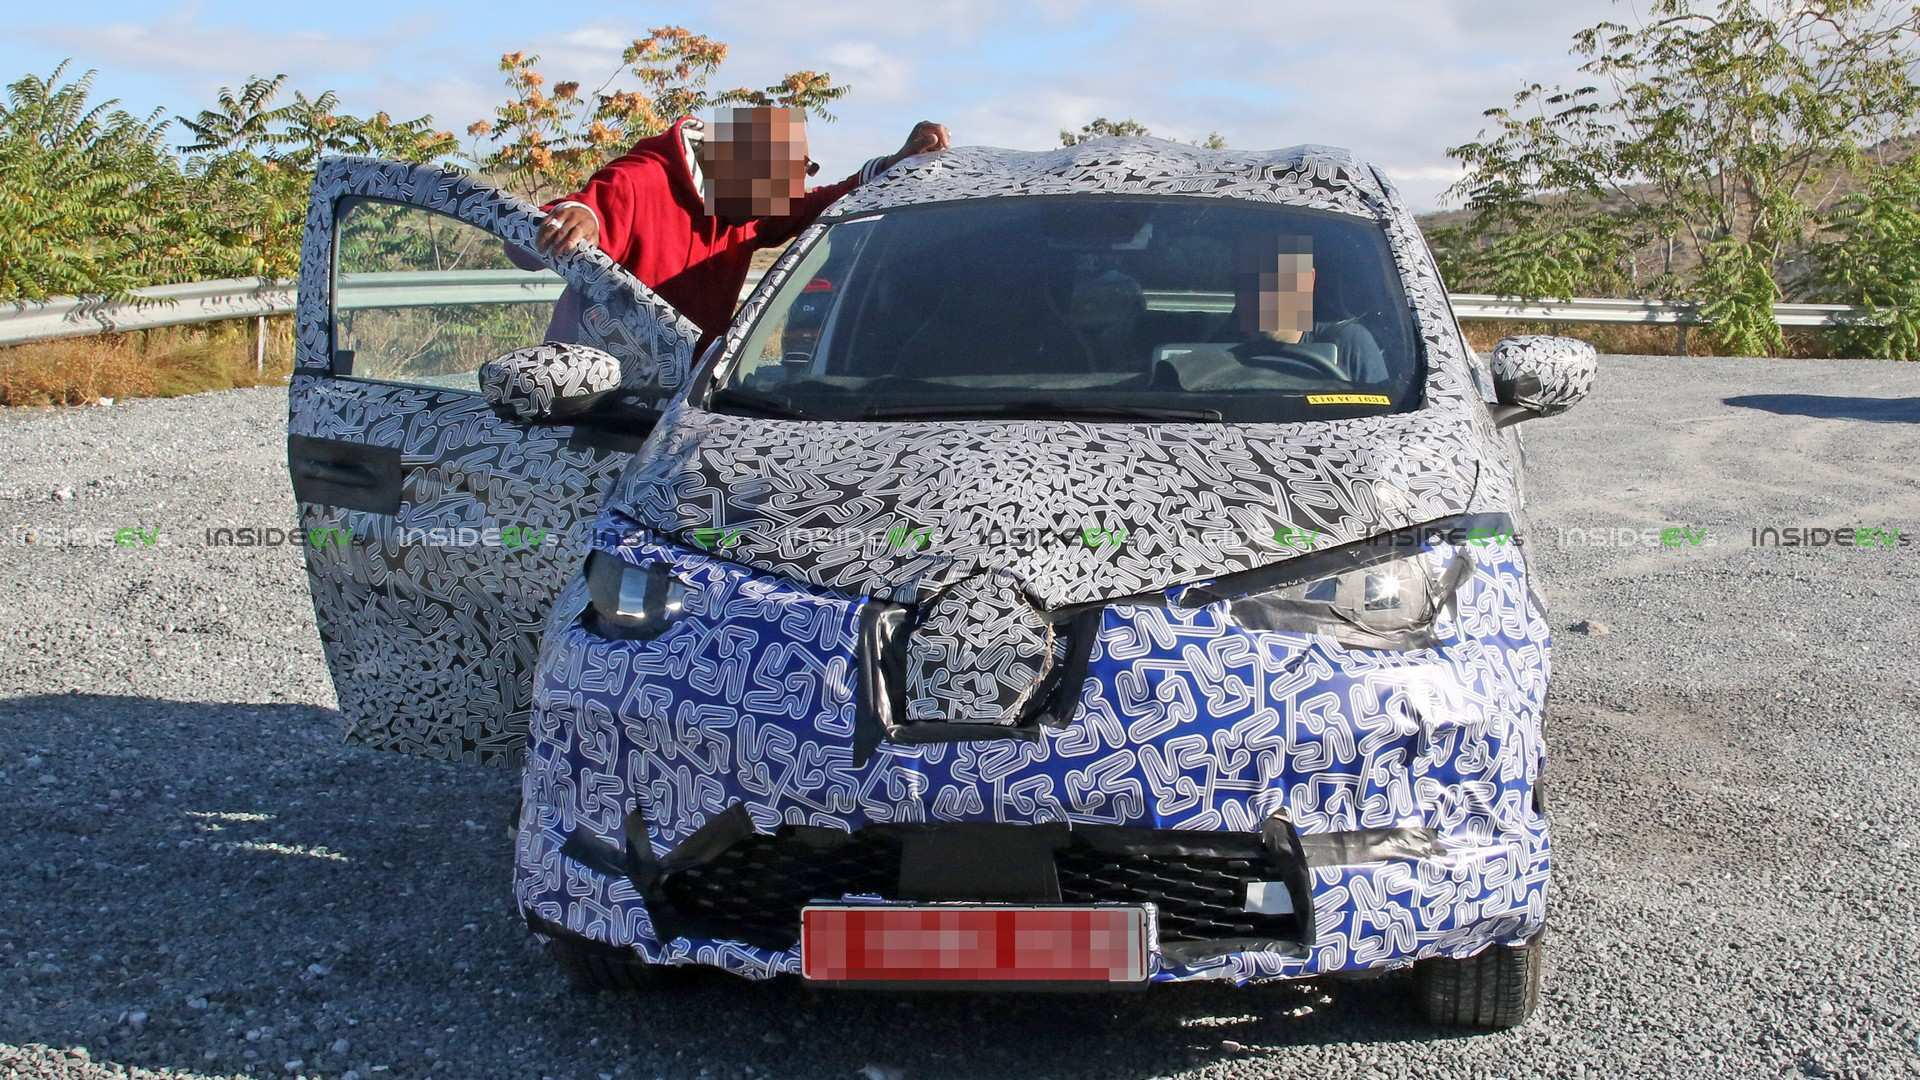 74 New Renault Zoe 2020 2 Prices with Renault Zoe 2020 2